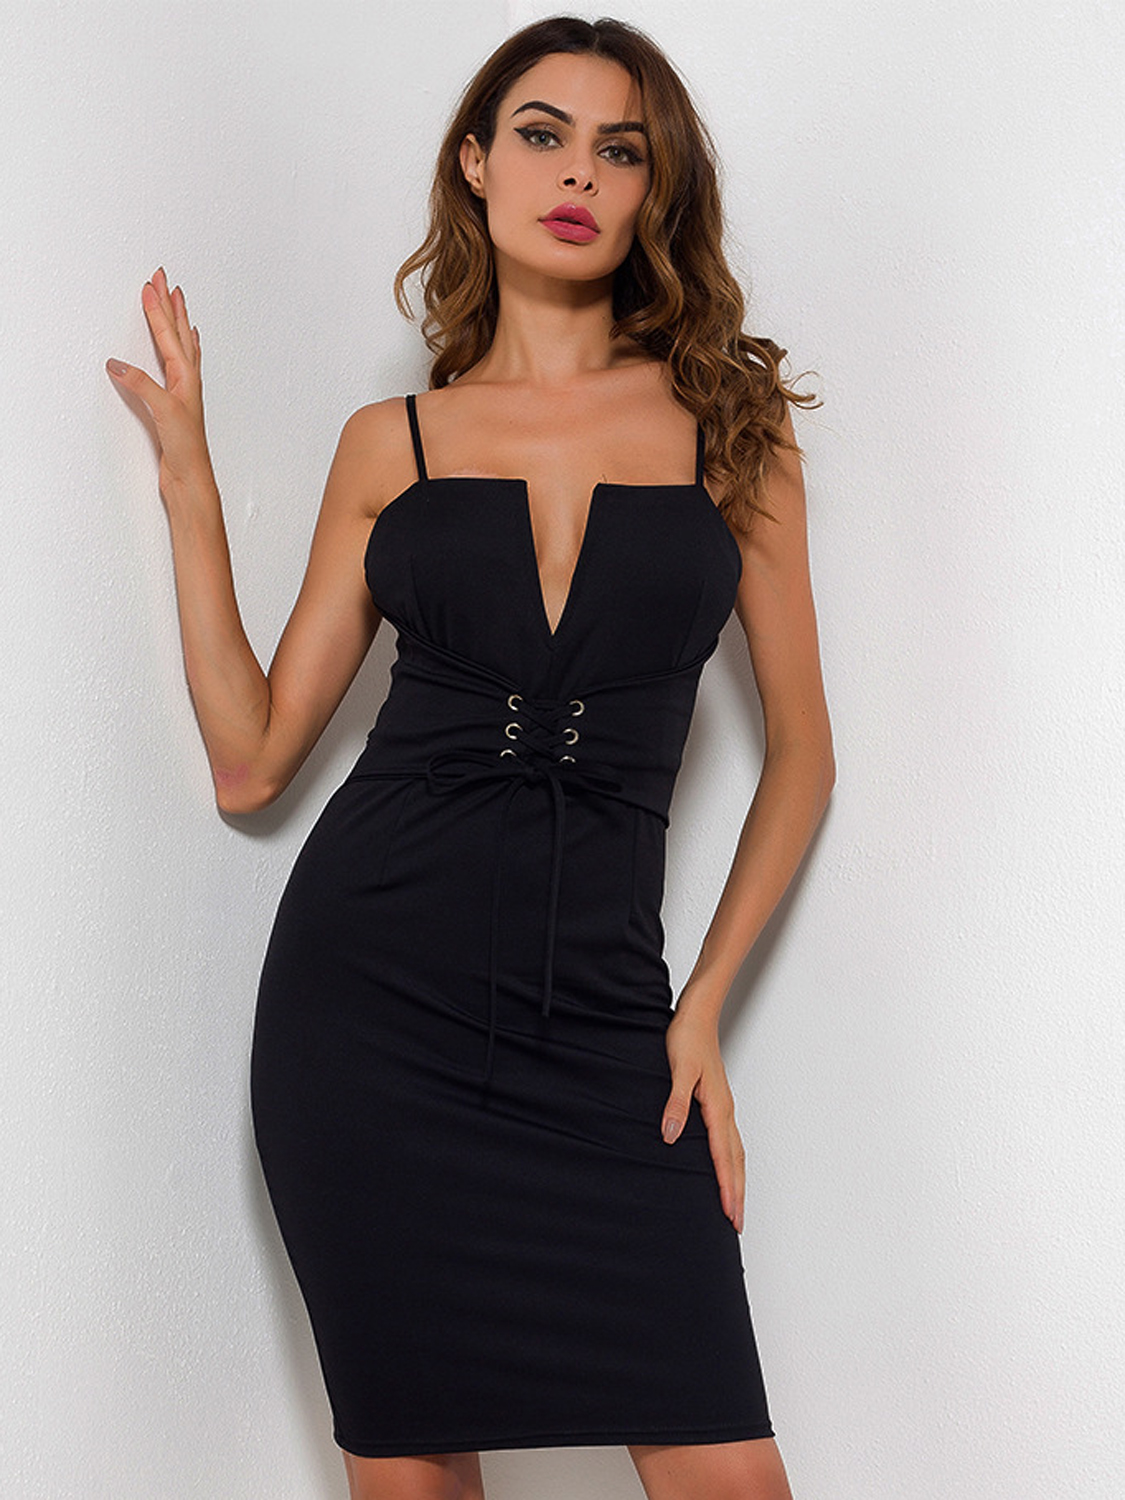 Black bodycon dress v neck with hat marcus